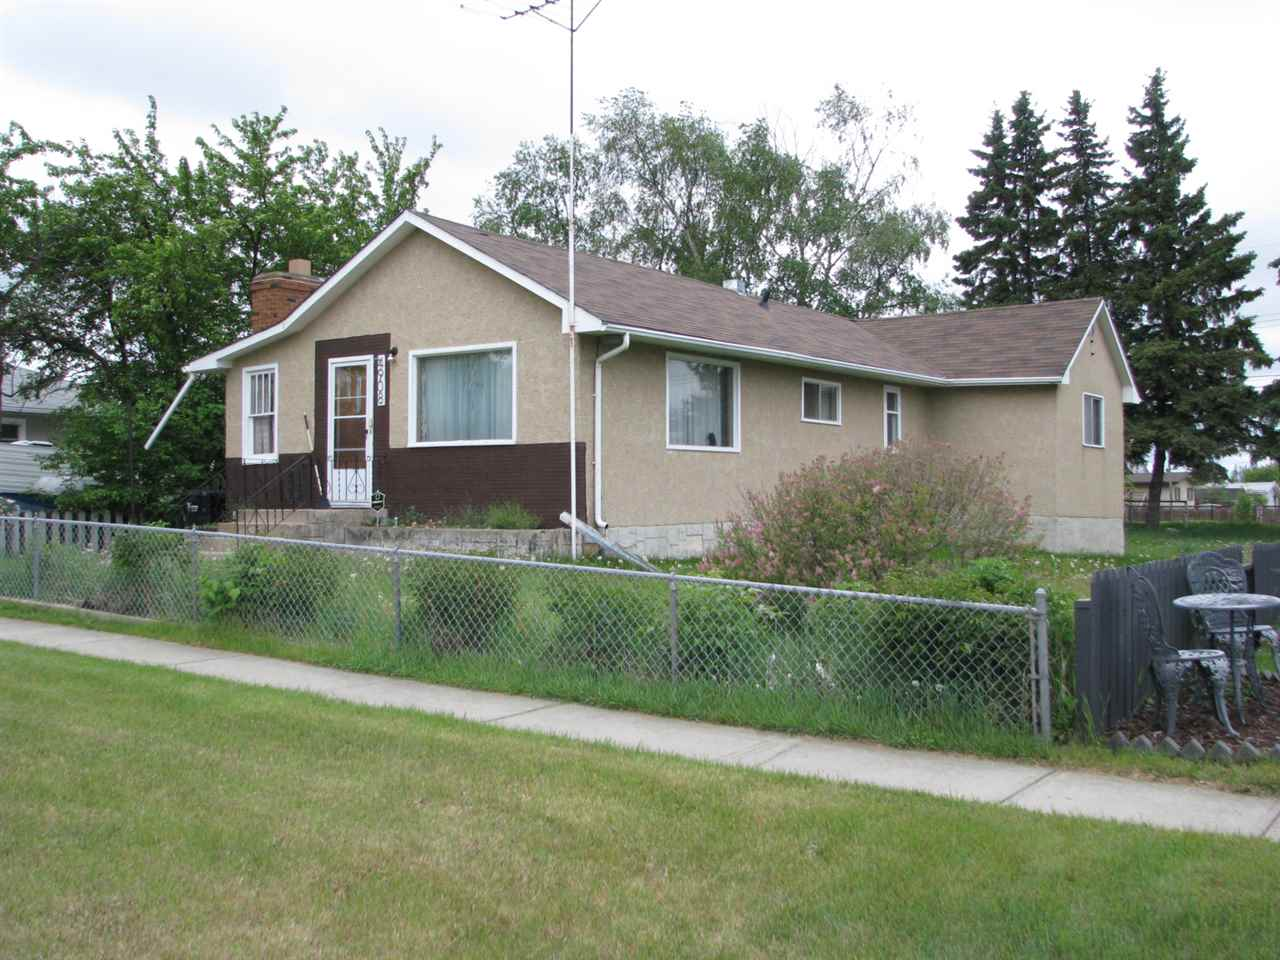 Larger Bungalow on a quiet tree lined street in Down Town Bruderheim. New Shingles New High Efficient Furnace and Hot Water Tank. 3 Bedrooms and a Den. Requires some TLC. Close to down town amenities.Good Neighborhood. LARGE Double Lot. PROPERTY SOLD AS IS.